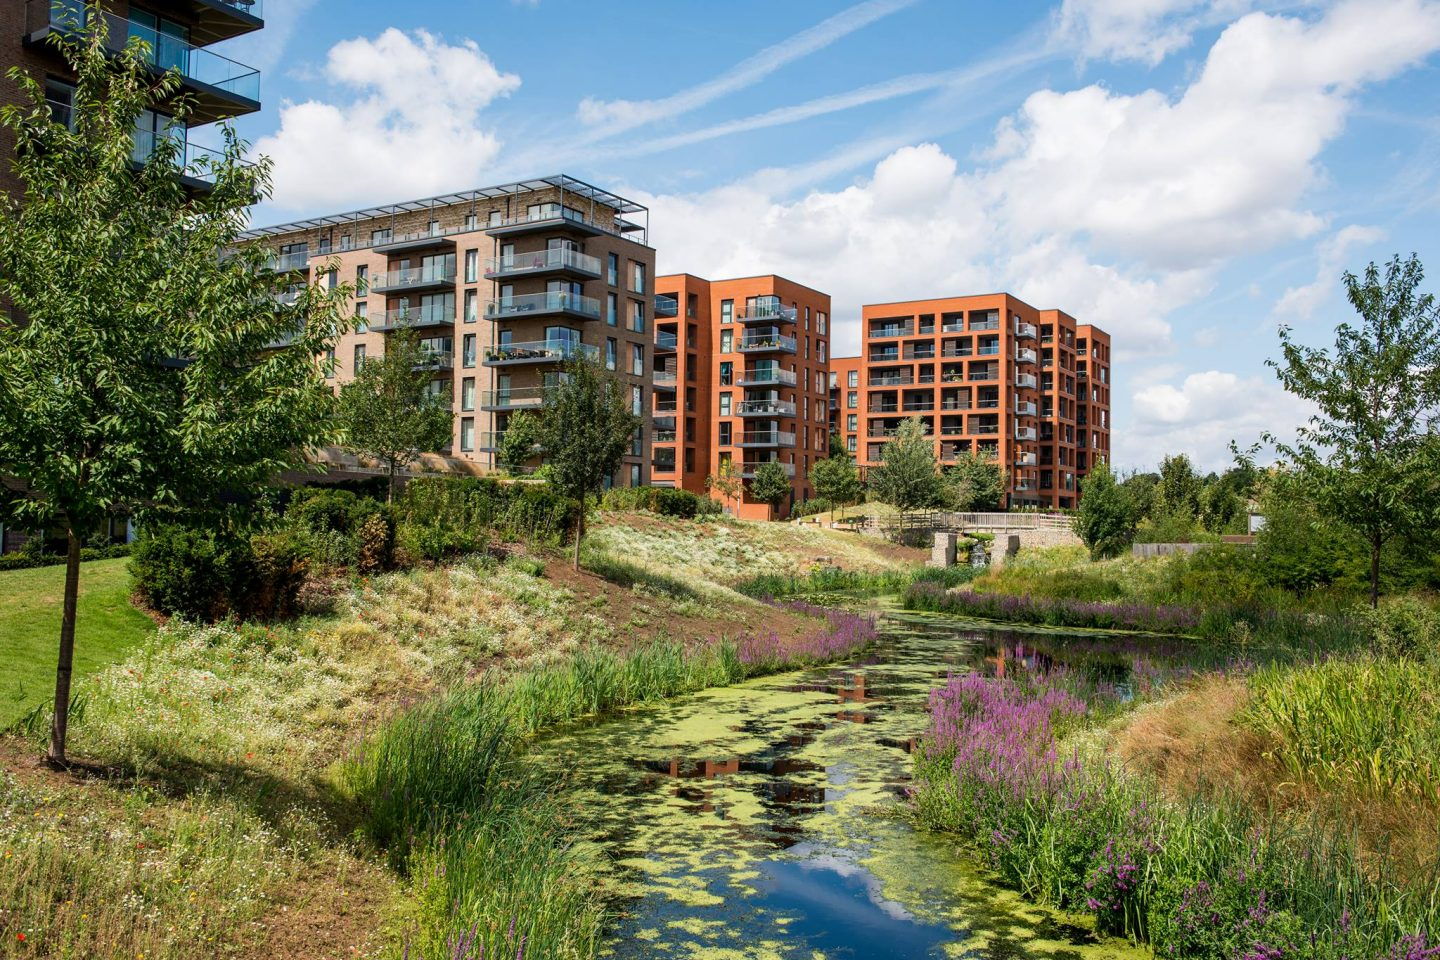 New London homes under £400k: Our pick